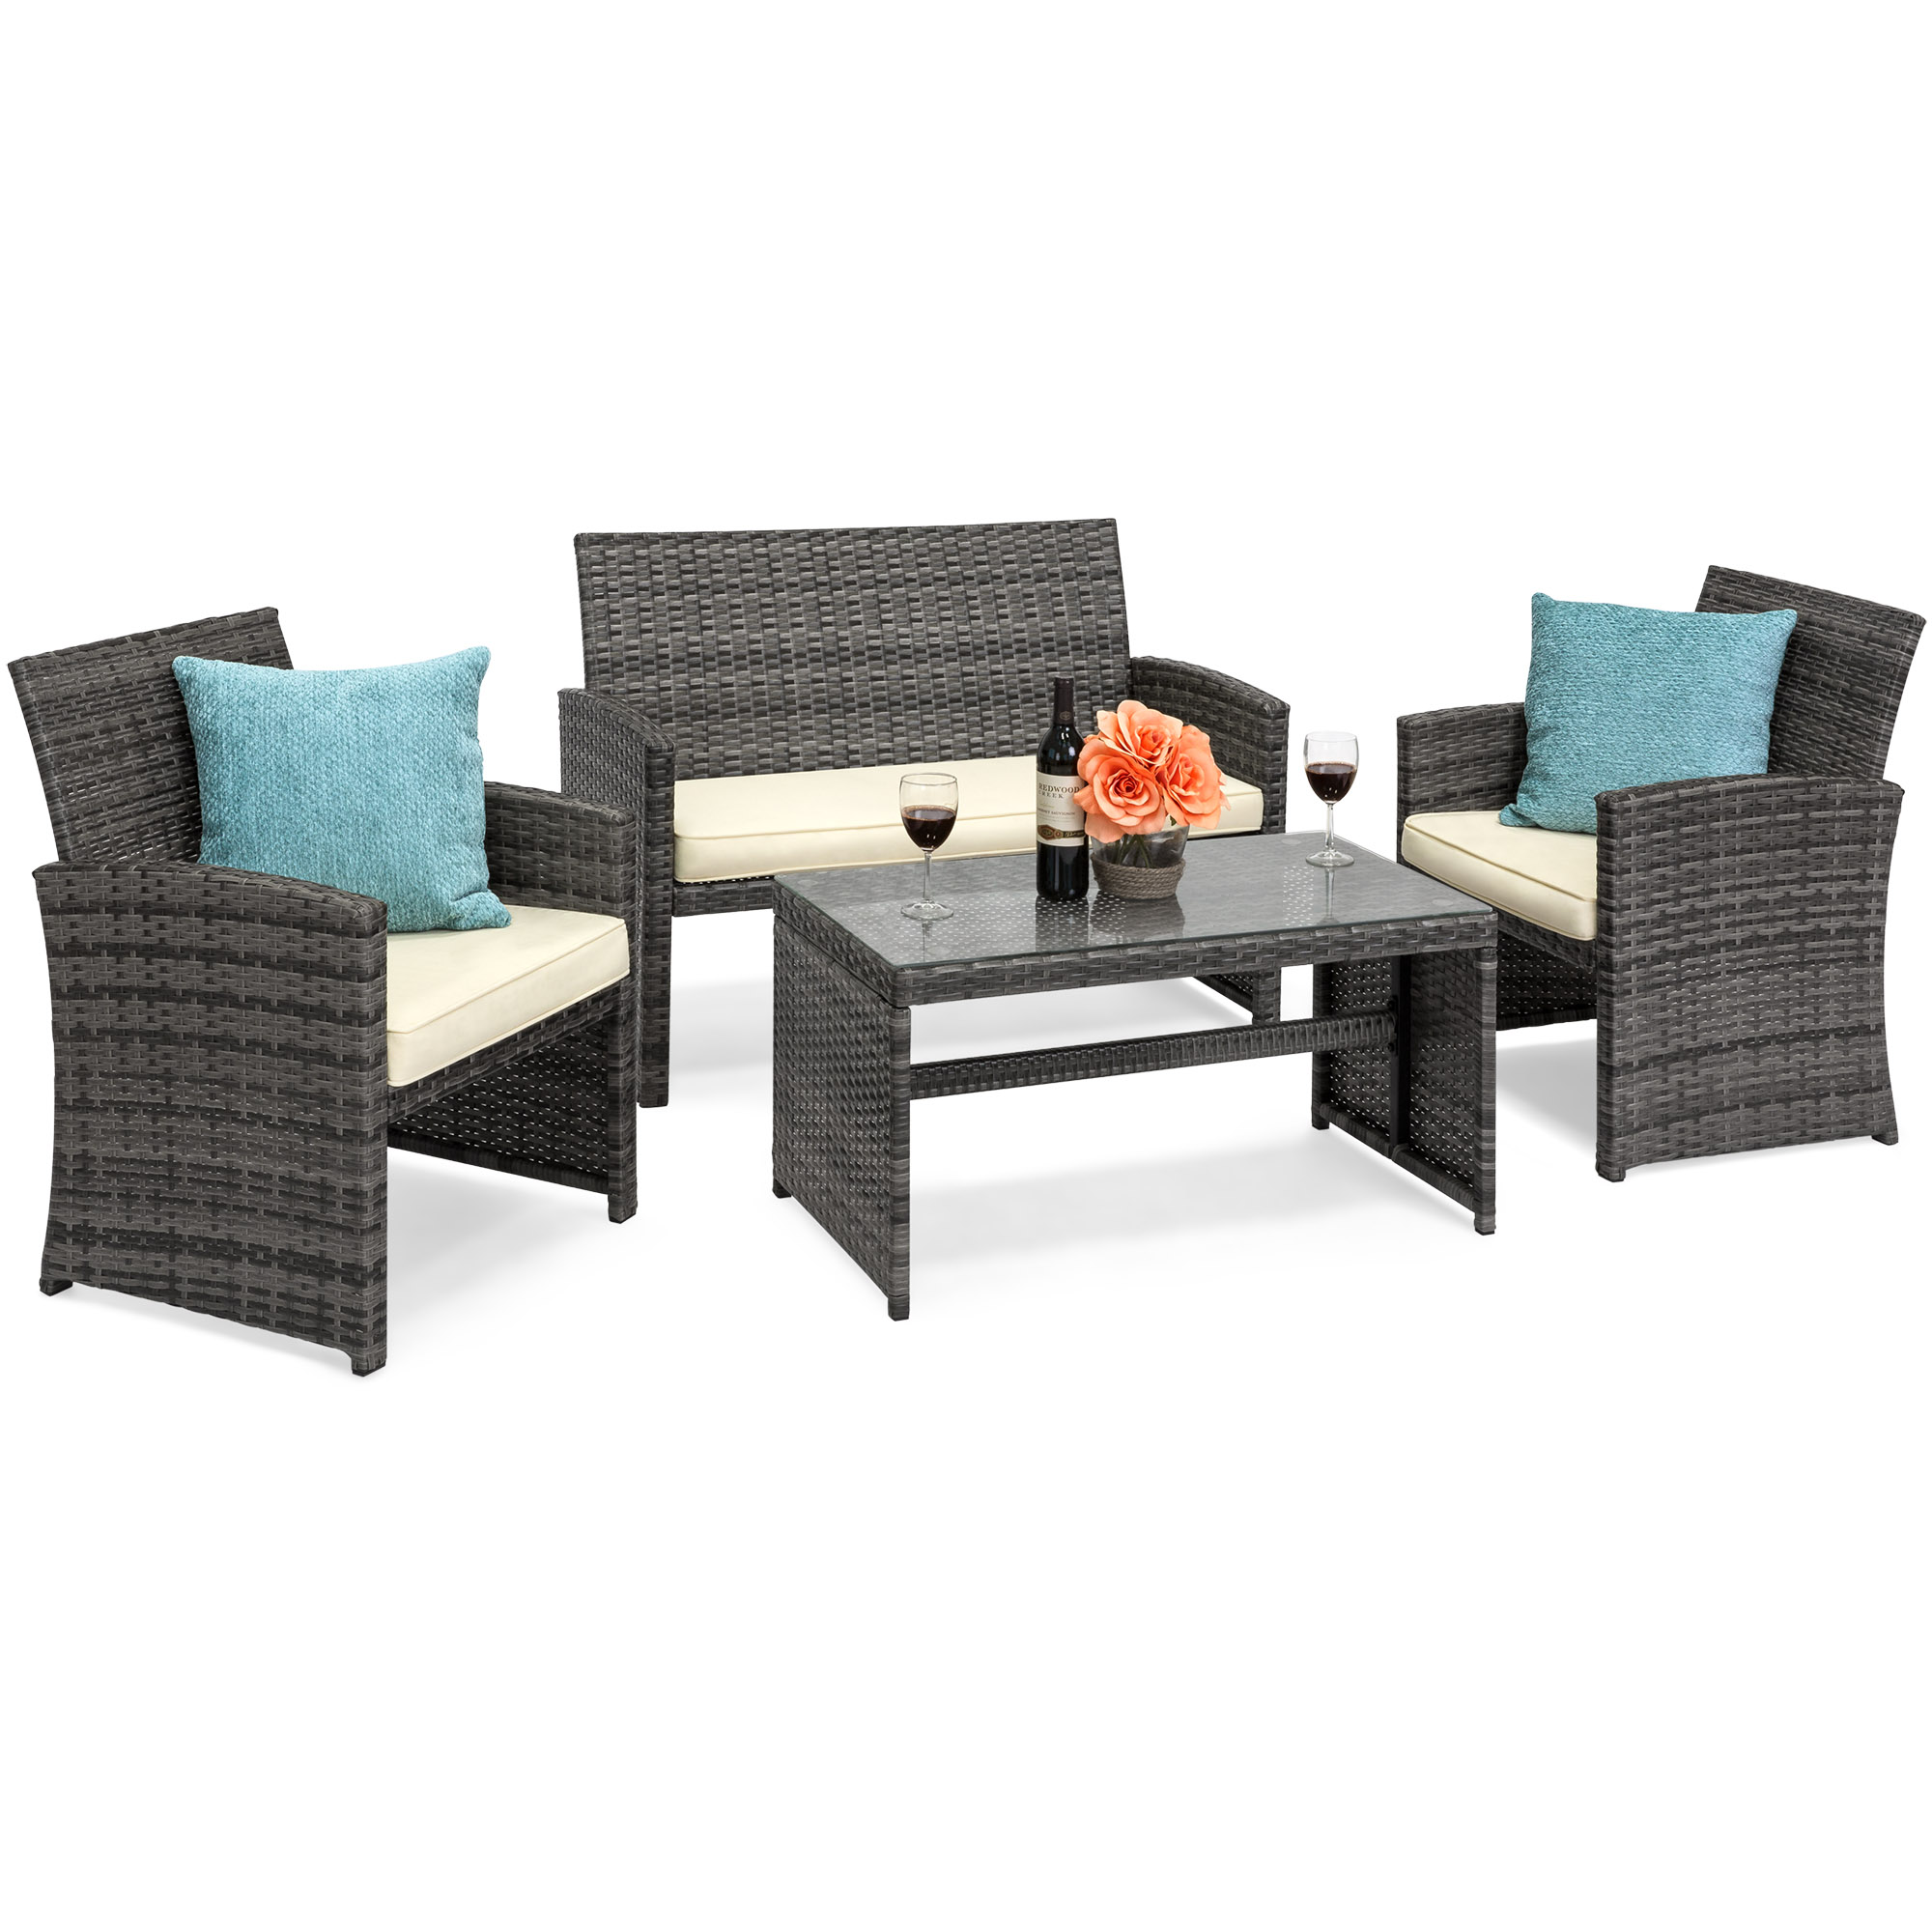 BCP 4-Piece Wicker Patio Furniture Set w  Tempered Glass, Sofas, Table, Seats by Best Choice Products